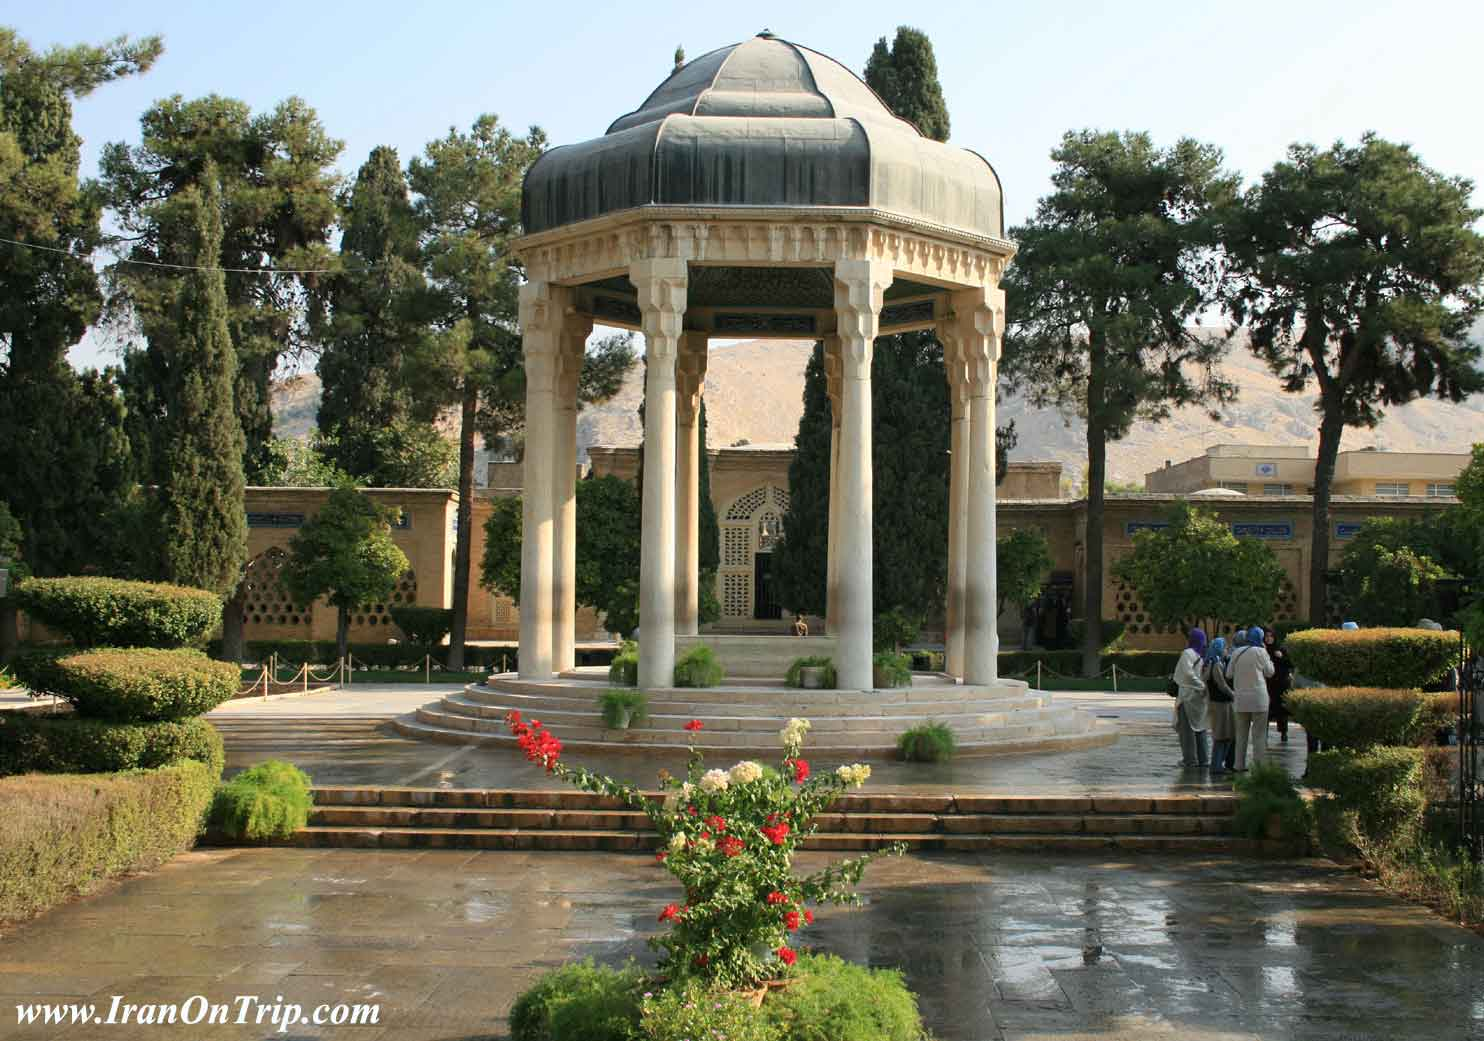 The Tomb of Hafez